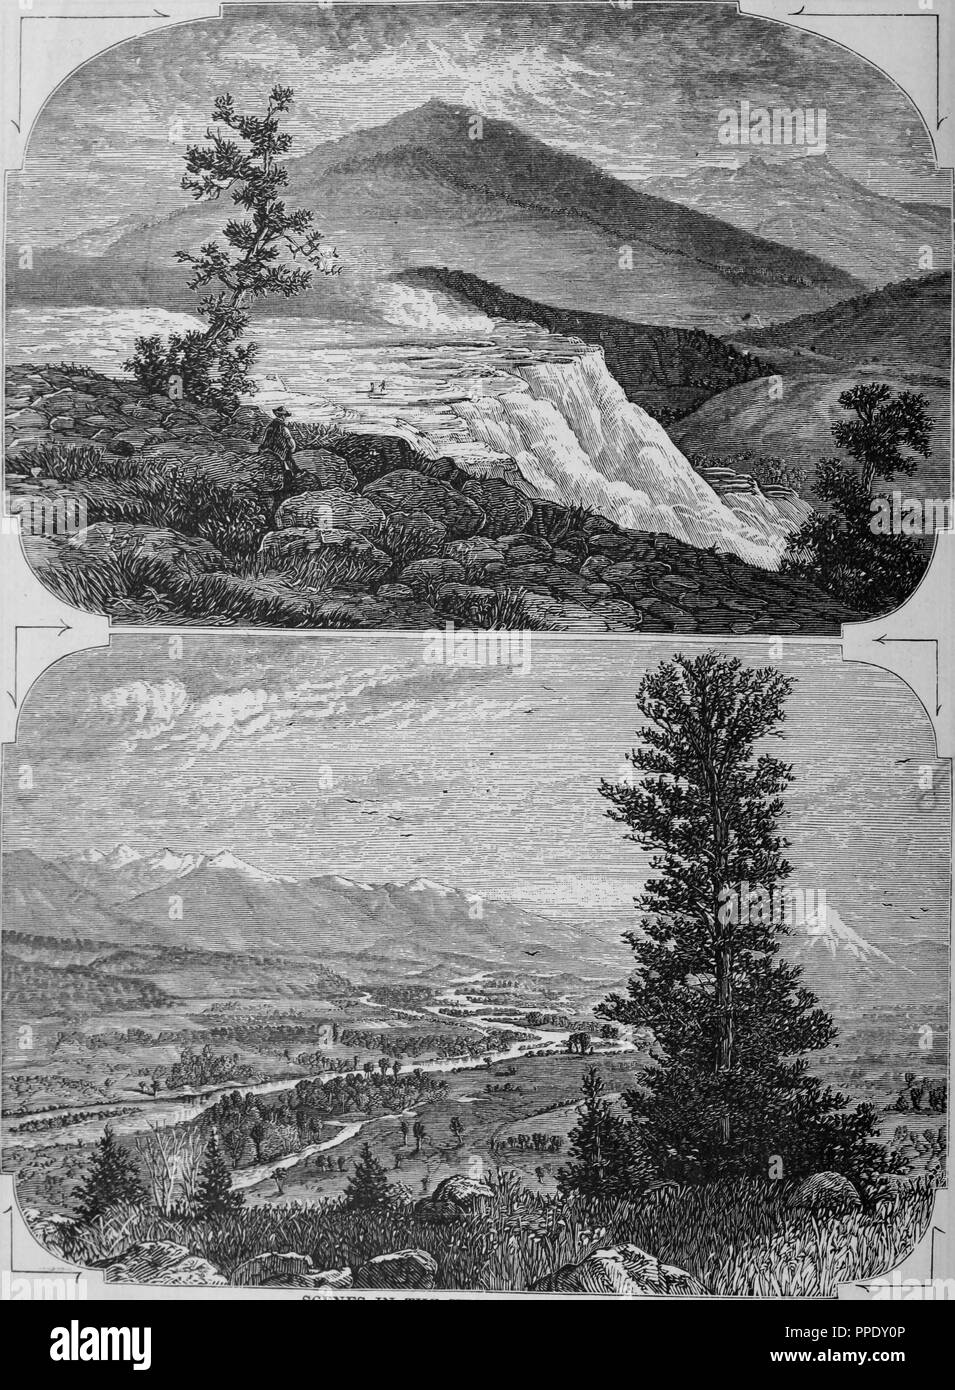 Engraving of the Yellowstone Park, Jupiter's Bath and Soda Mountain, and Walley of Yellowstone, from the book 'The Pacific tourist', 1877. Courtesy Internet Archive. () - Stock Image